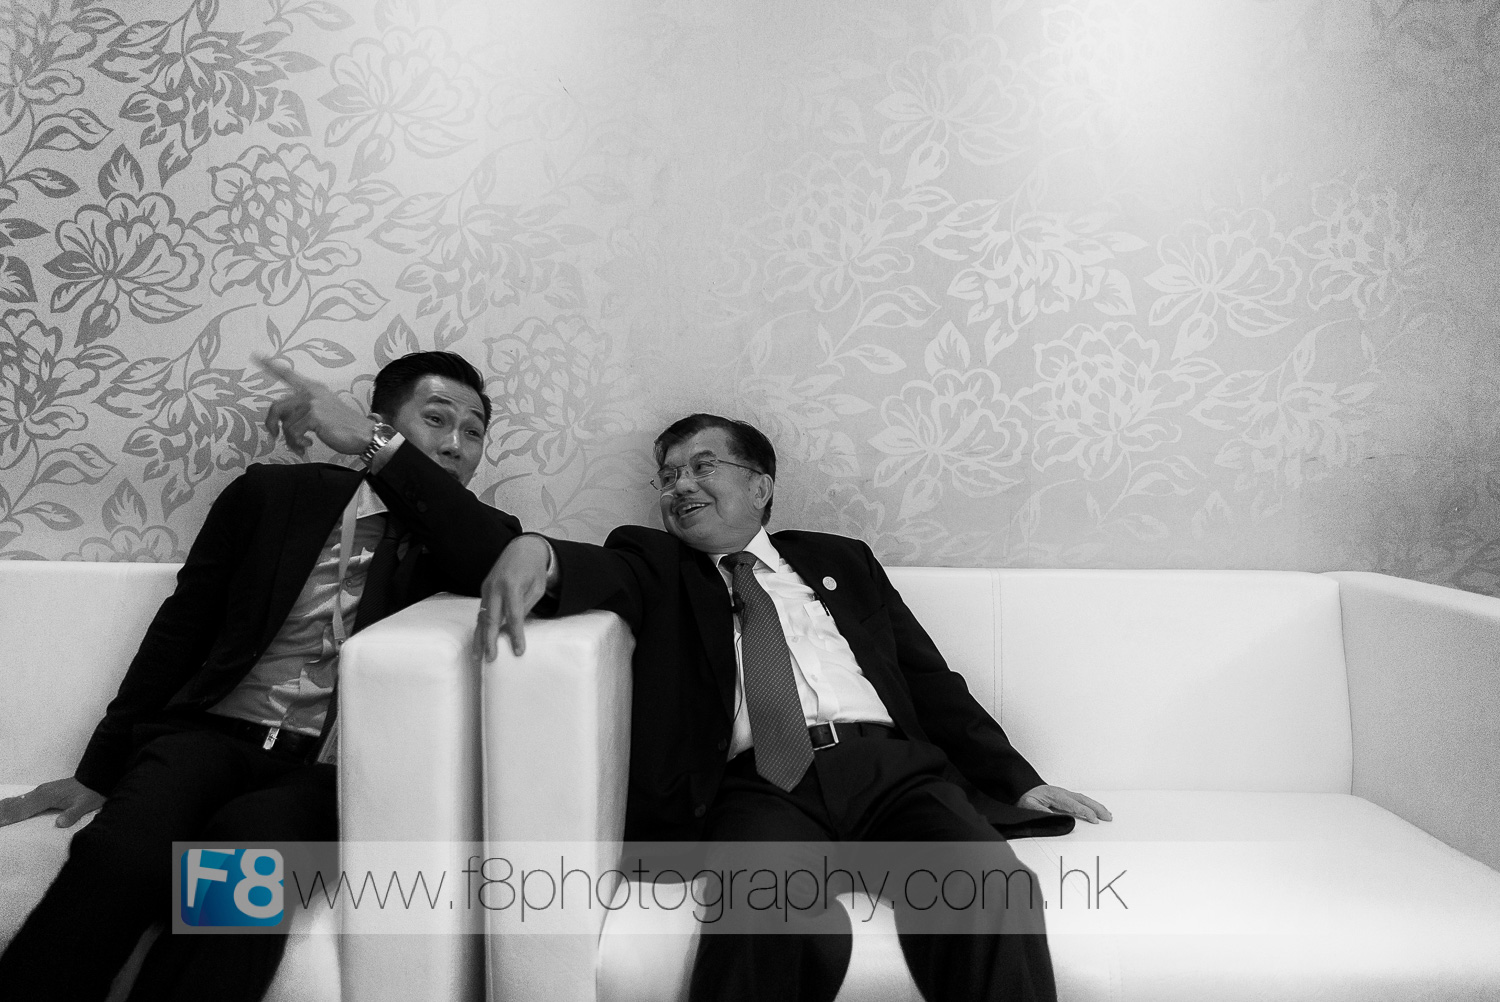 Indonesian Vice President Jusuf Kalla - relaxing in the green room before taking the stage.